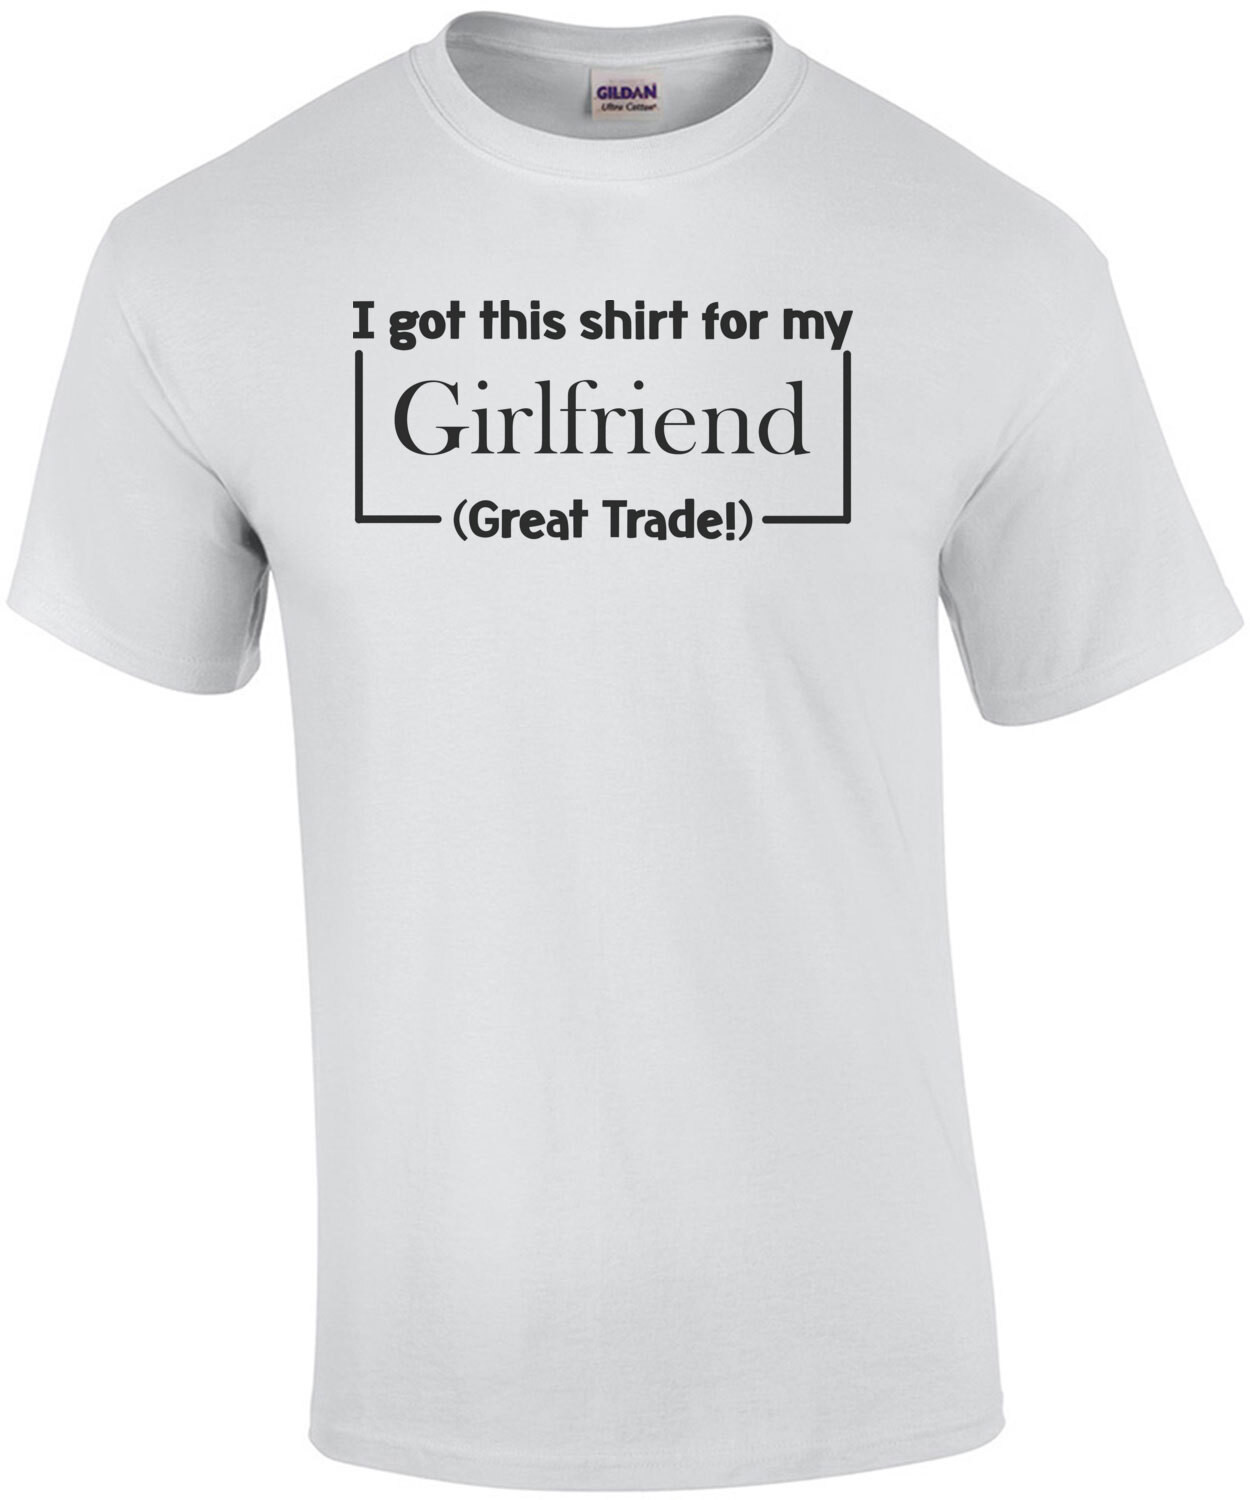 I Got This Shirt For My Girlfriend (Great Trade!) T-Shirt